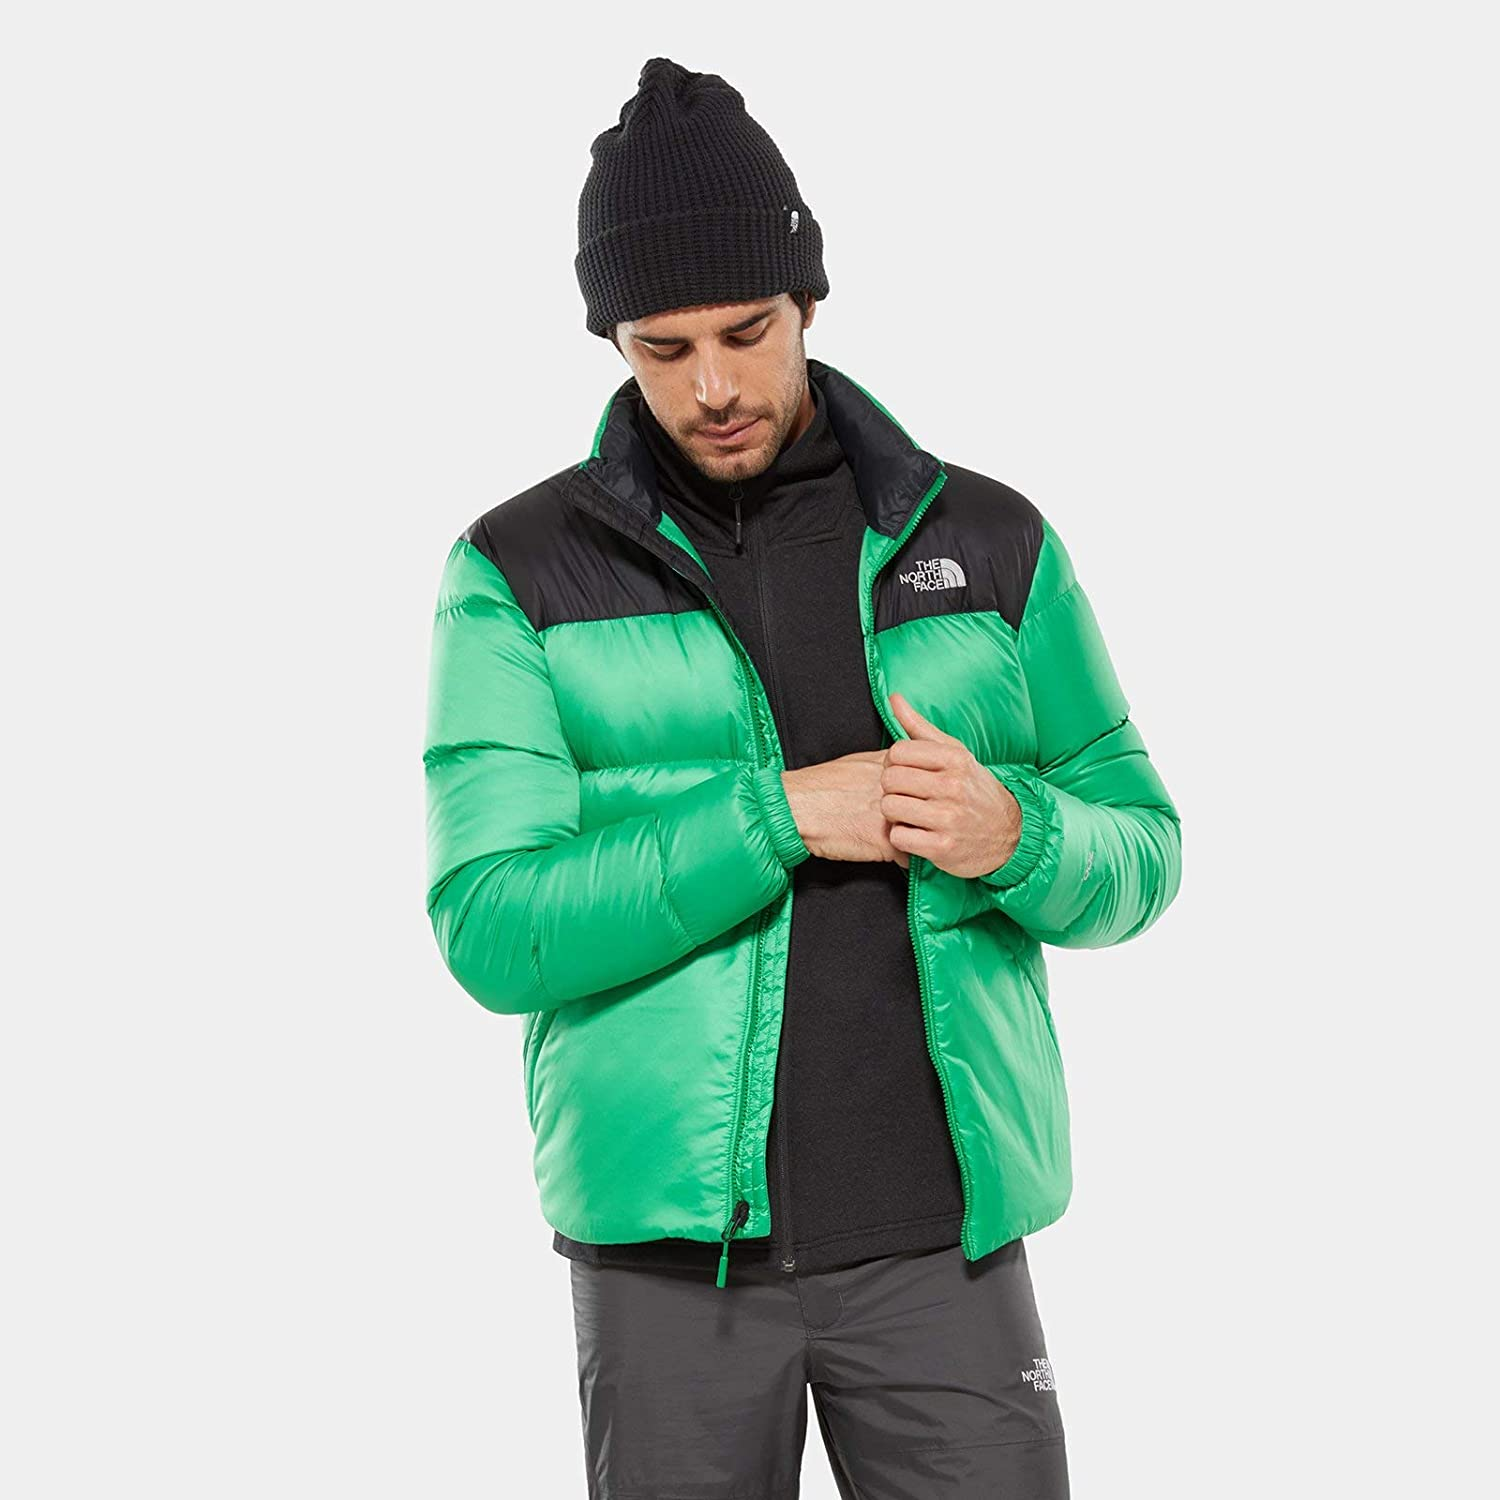 THE NORTH FACE Men s Nuptse Iii Jacket  Amazon.co.uk  Sports   Outdoors 02b5880a4